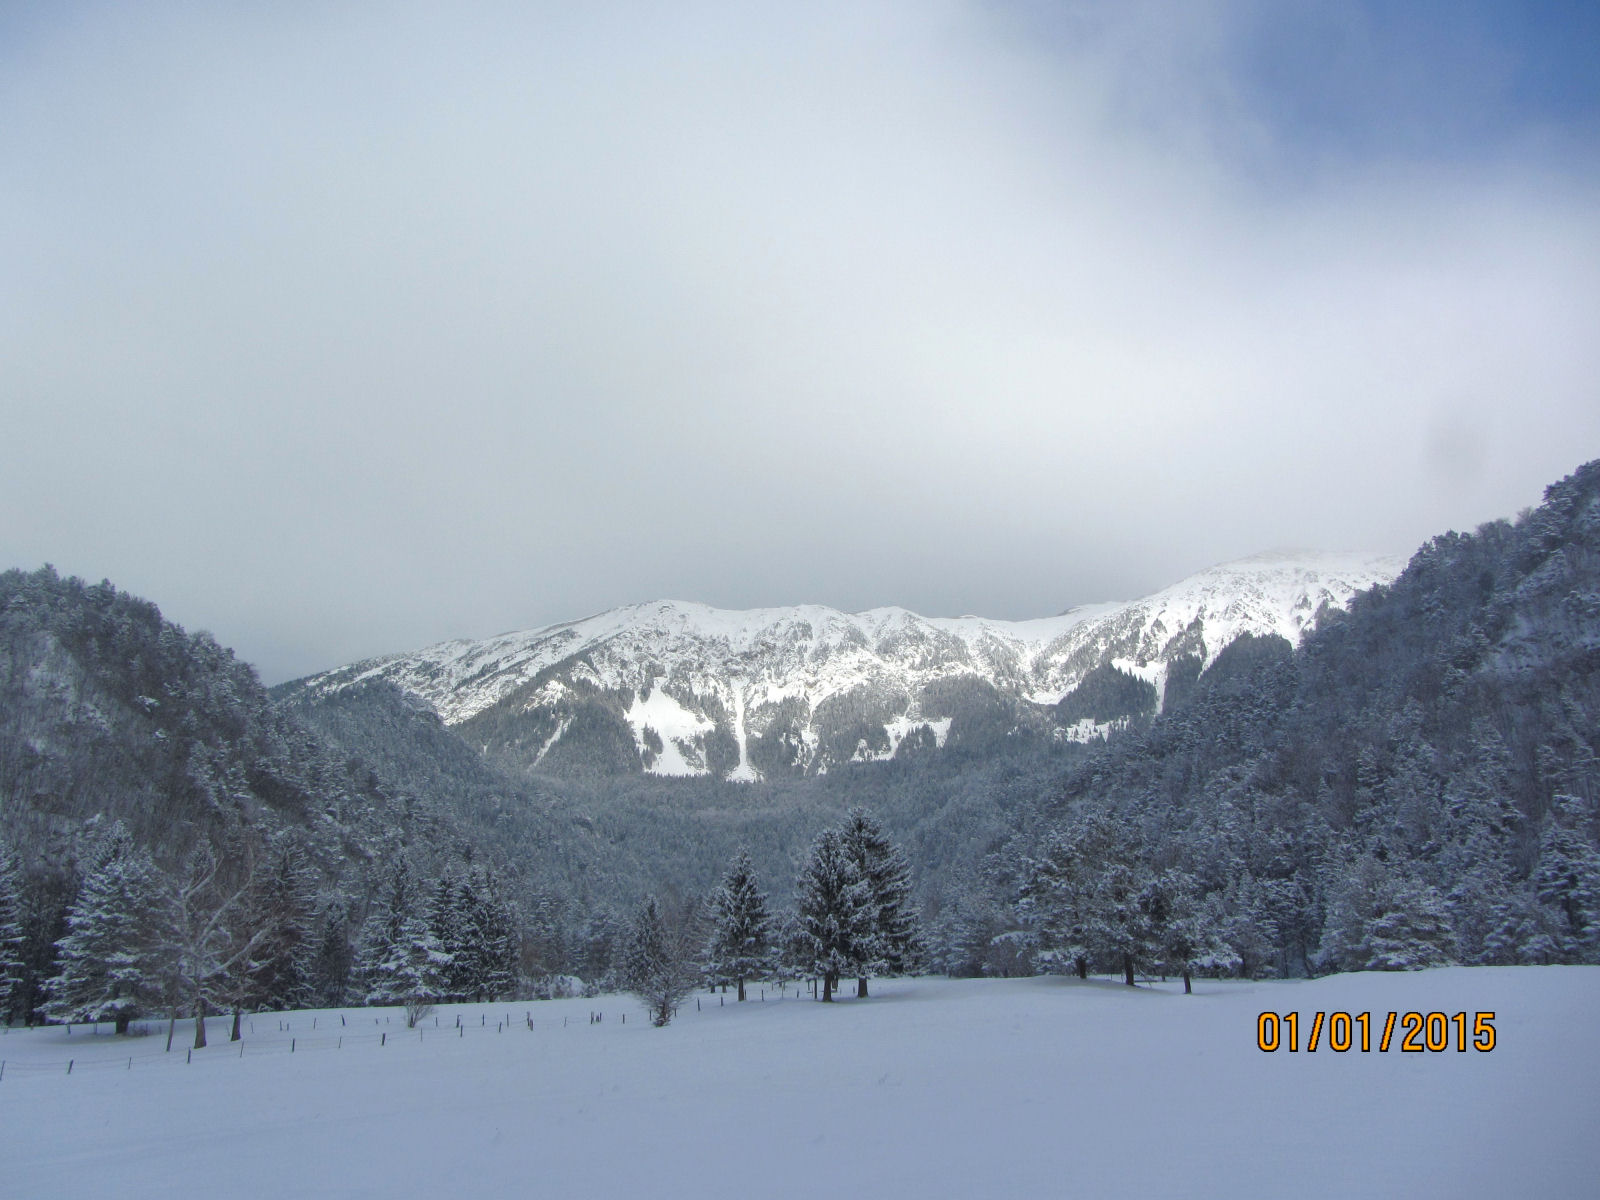 The Karavanke mountains in winter